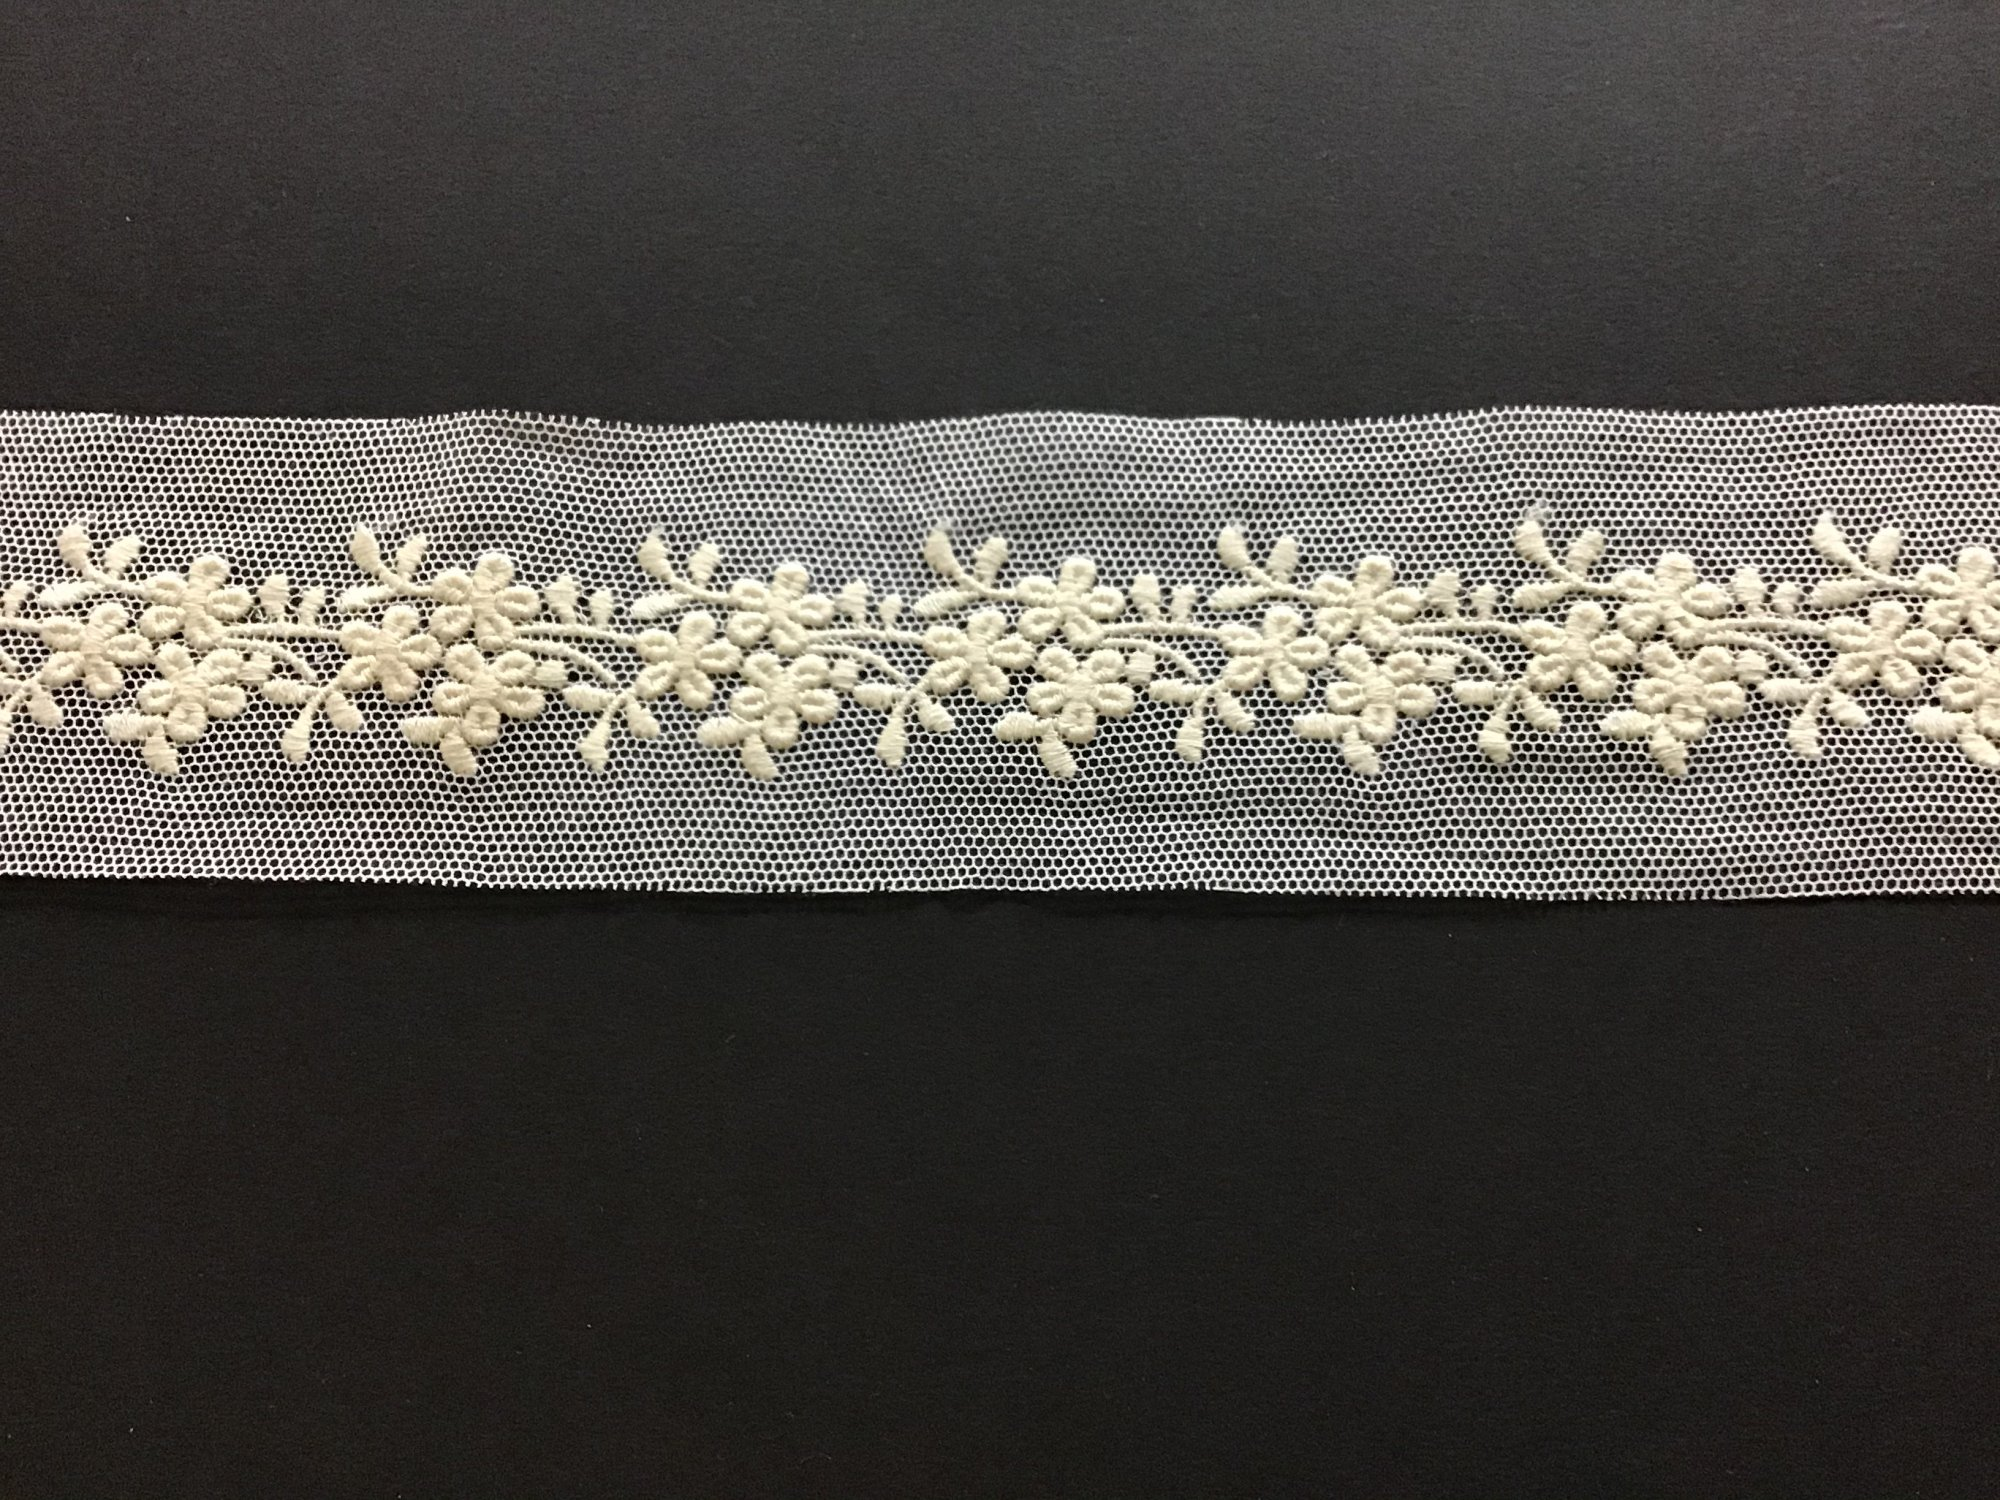 English Netting Lace Insertion 2 Inches Ecru on White 717757-C